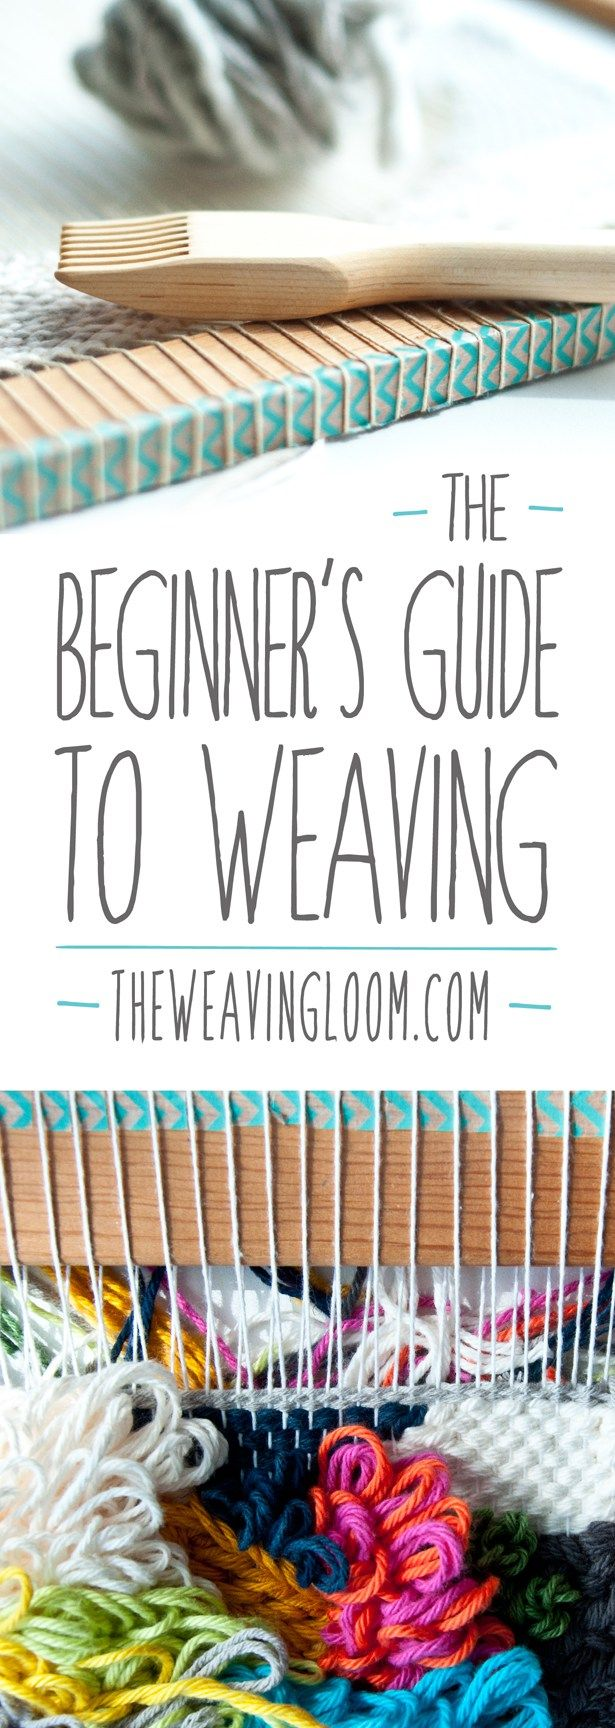 Fabric manipulation and textile design - weaving - Tips, links and resources from Kate, founder of the Weaving Loom blog.